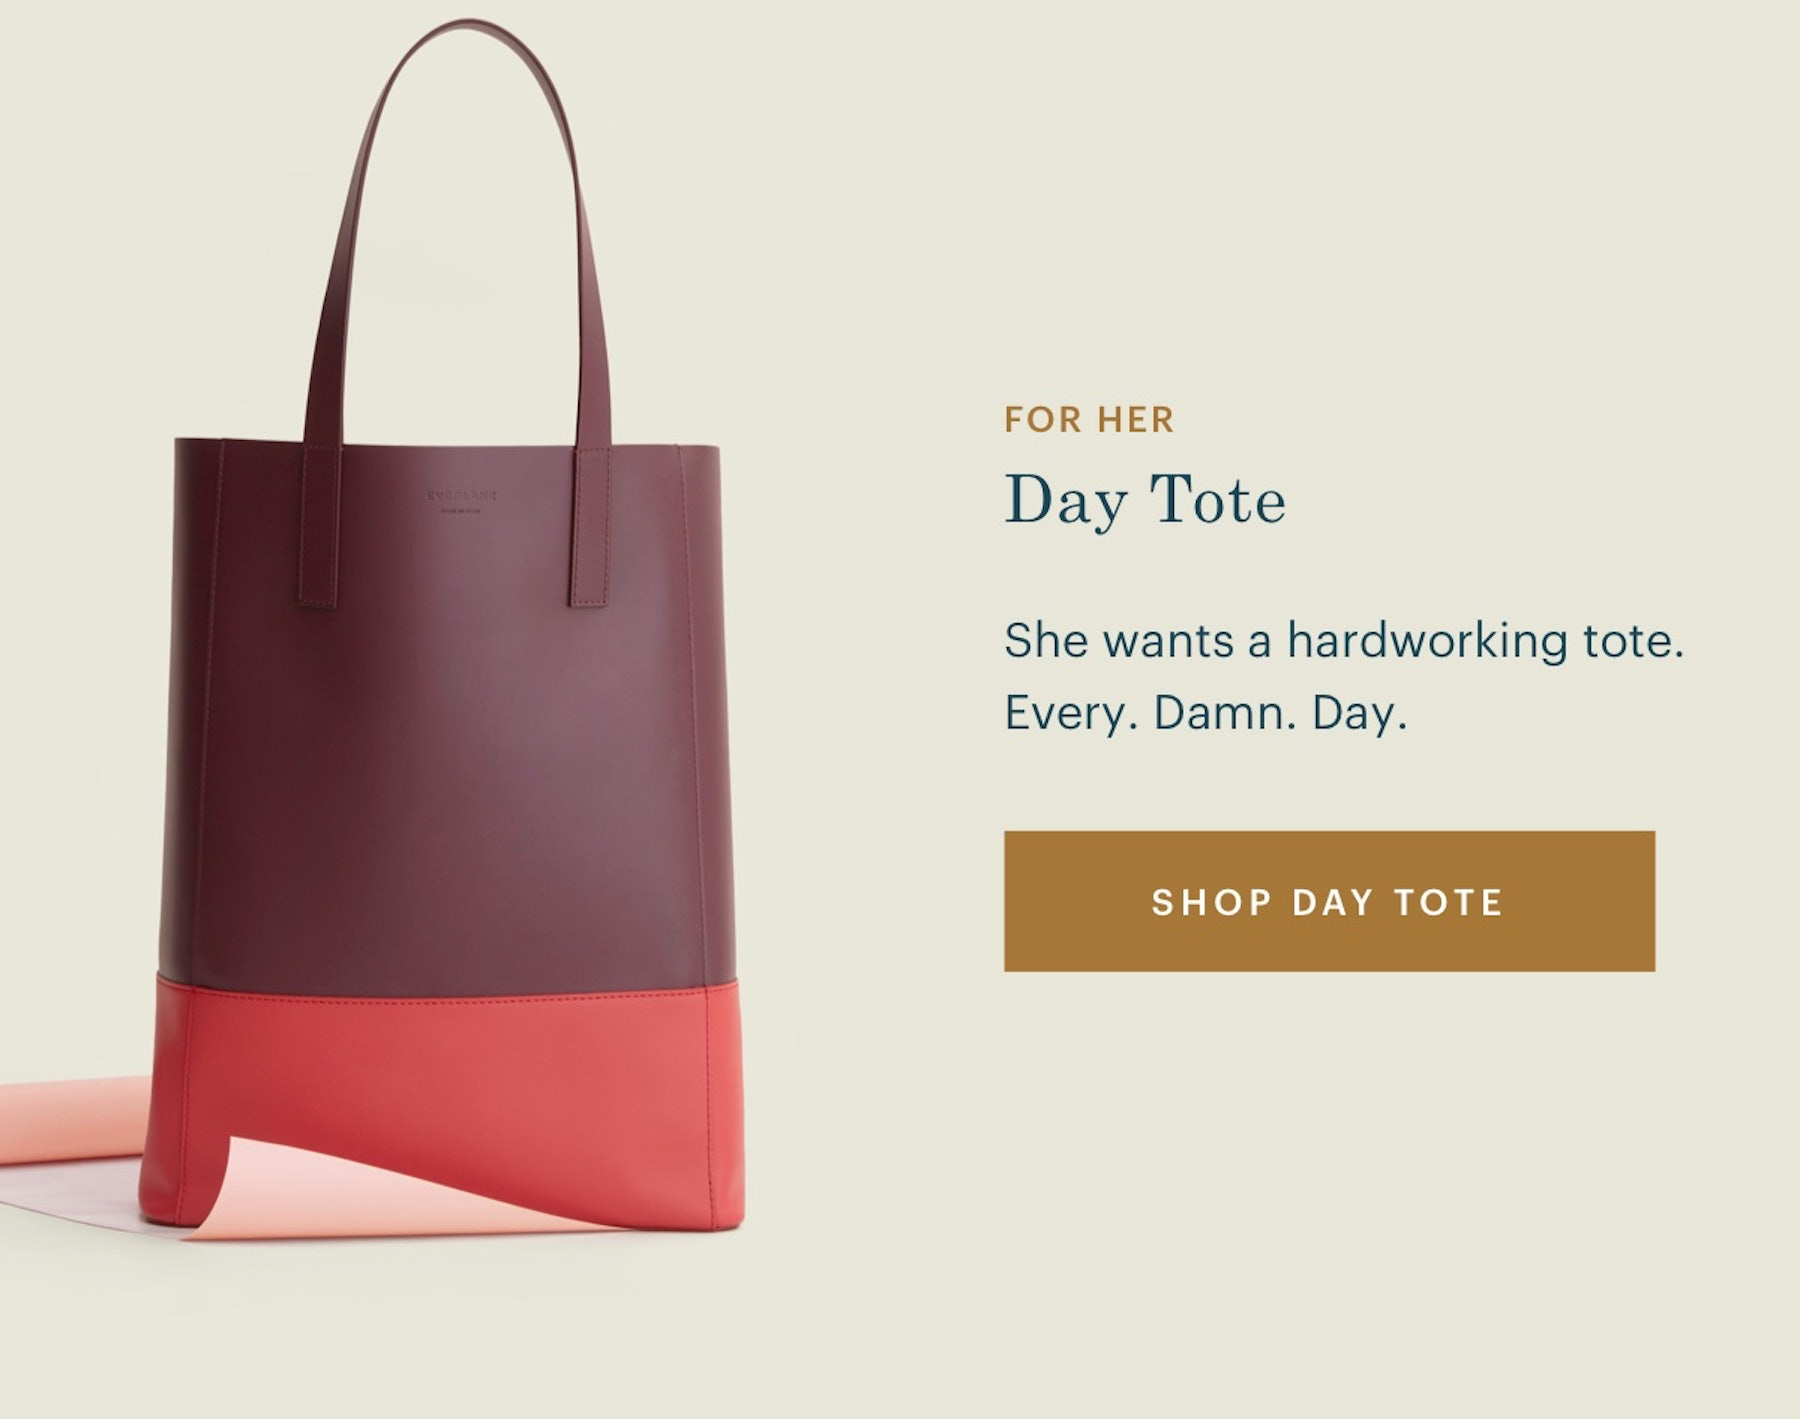 The Day Tote. She wants a hard-working tote. Every. Damn. Day.